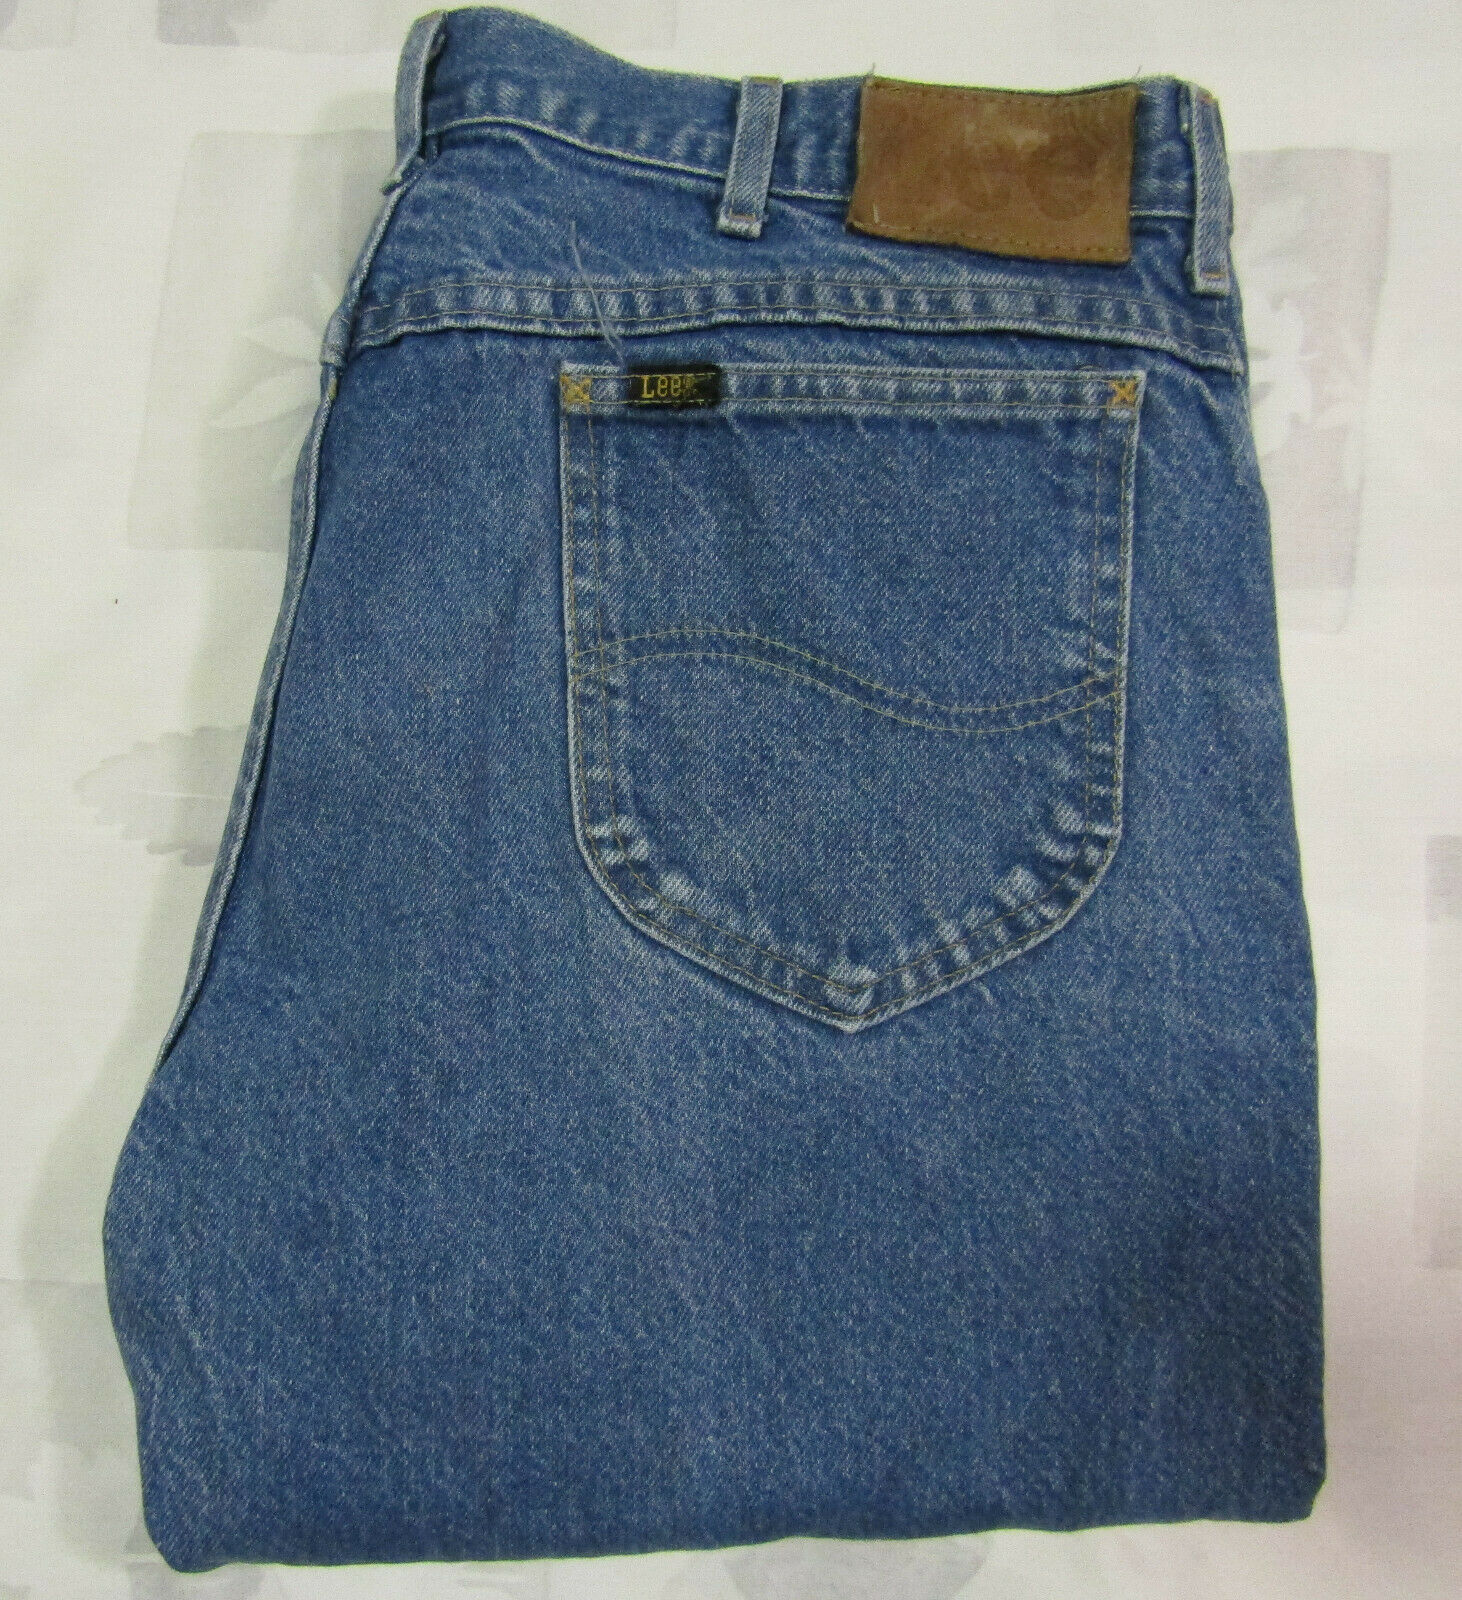 Primary image for Vintage Lee Riders 36 X 31 Mens Blue Jeans Heavy Cotton Denim Made USA 34 X 29 B